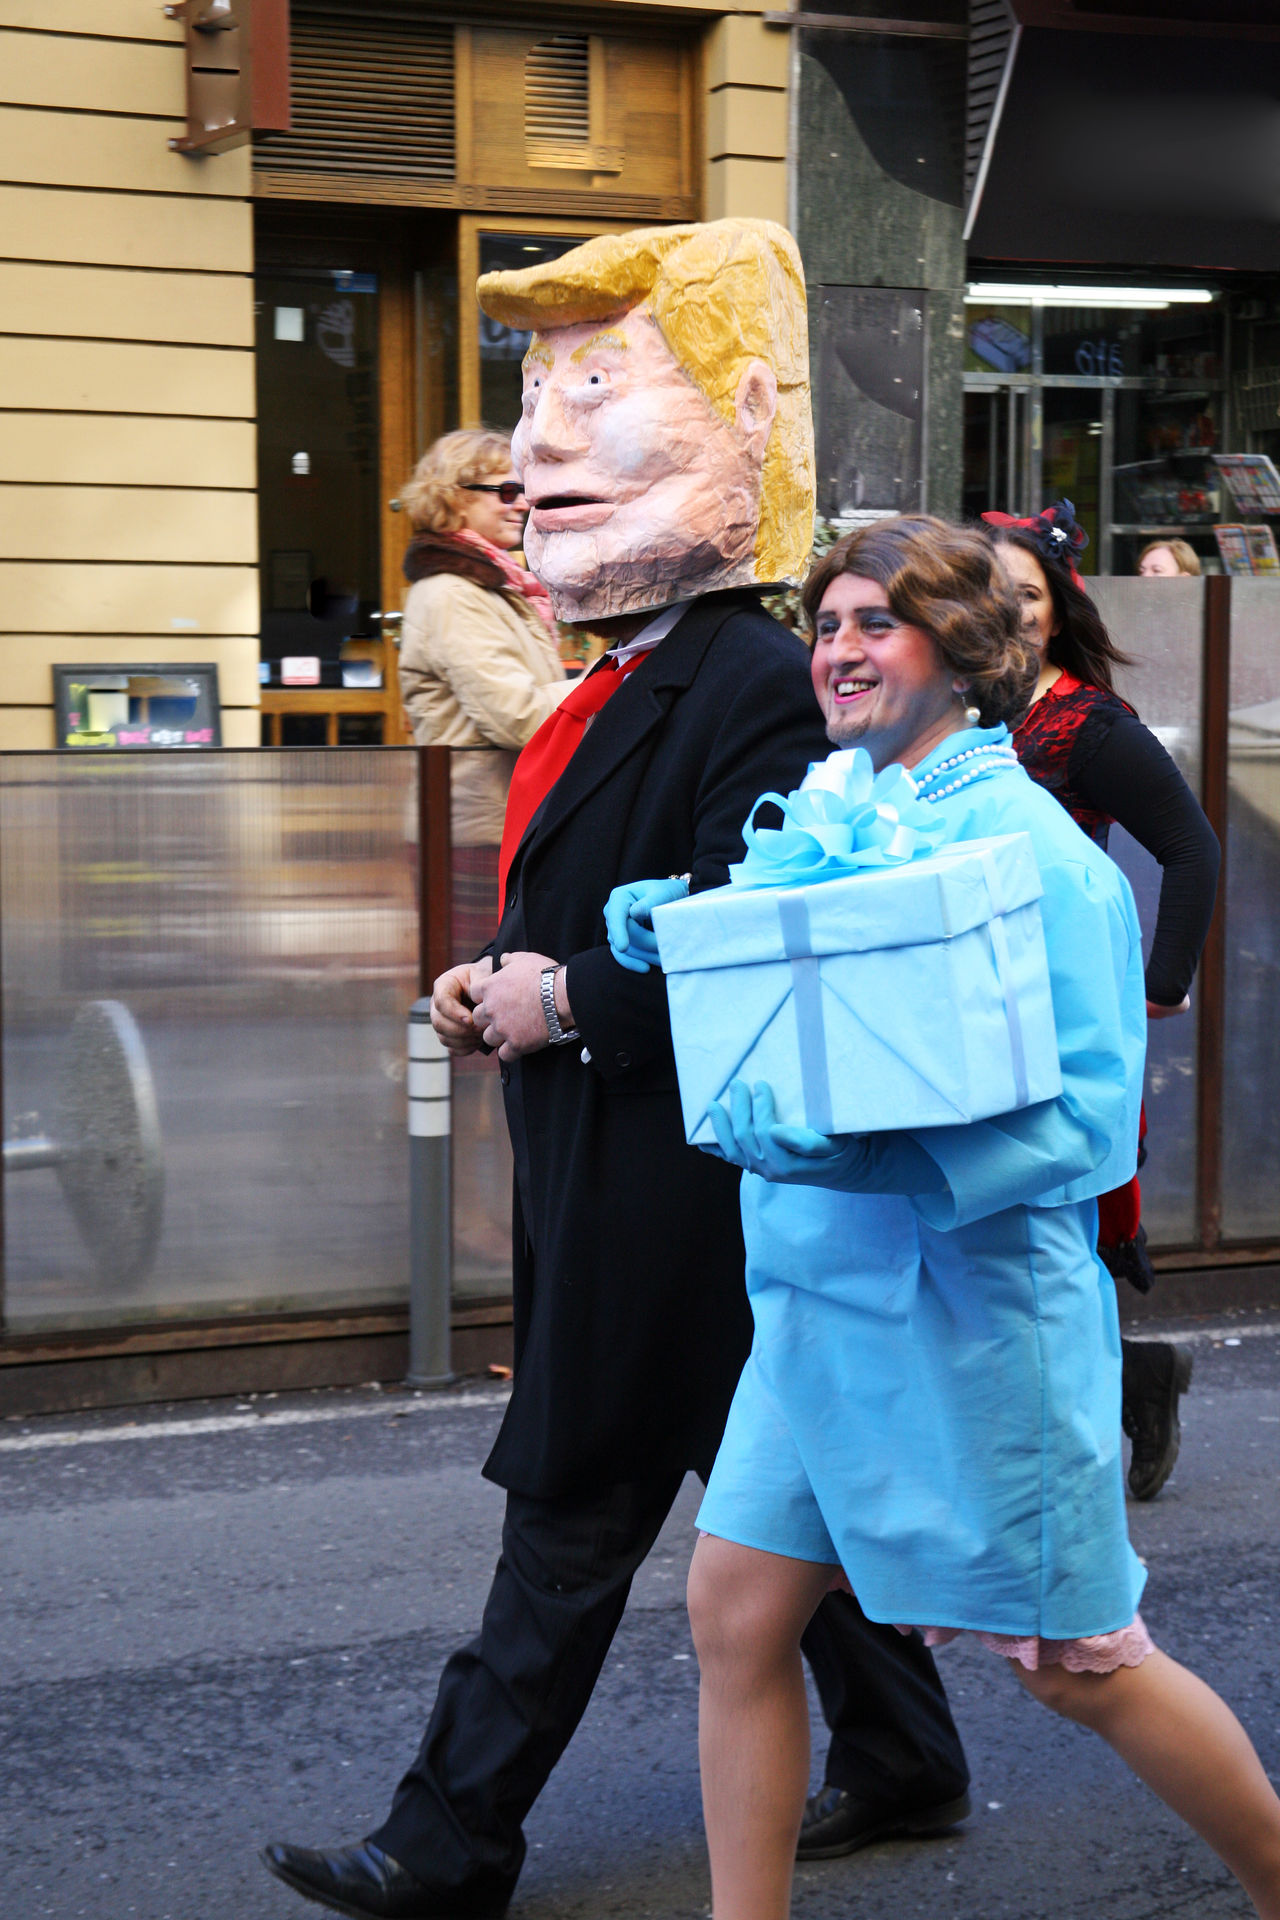 Carnival in Zagreb,Croatia,Europe,9 2017. Carnival Celebrities Cheerful City Street Colourful Costumes Craftsmanship  Eu Europe Fair Fancy February Funny Masks Melania People Picturesque President Show Smiling Togetherness Trump USA Zagreb, Croatia